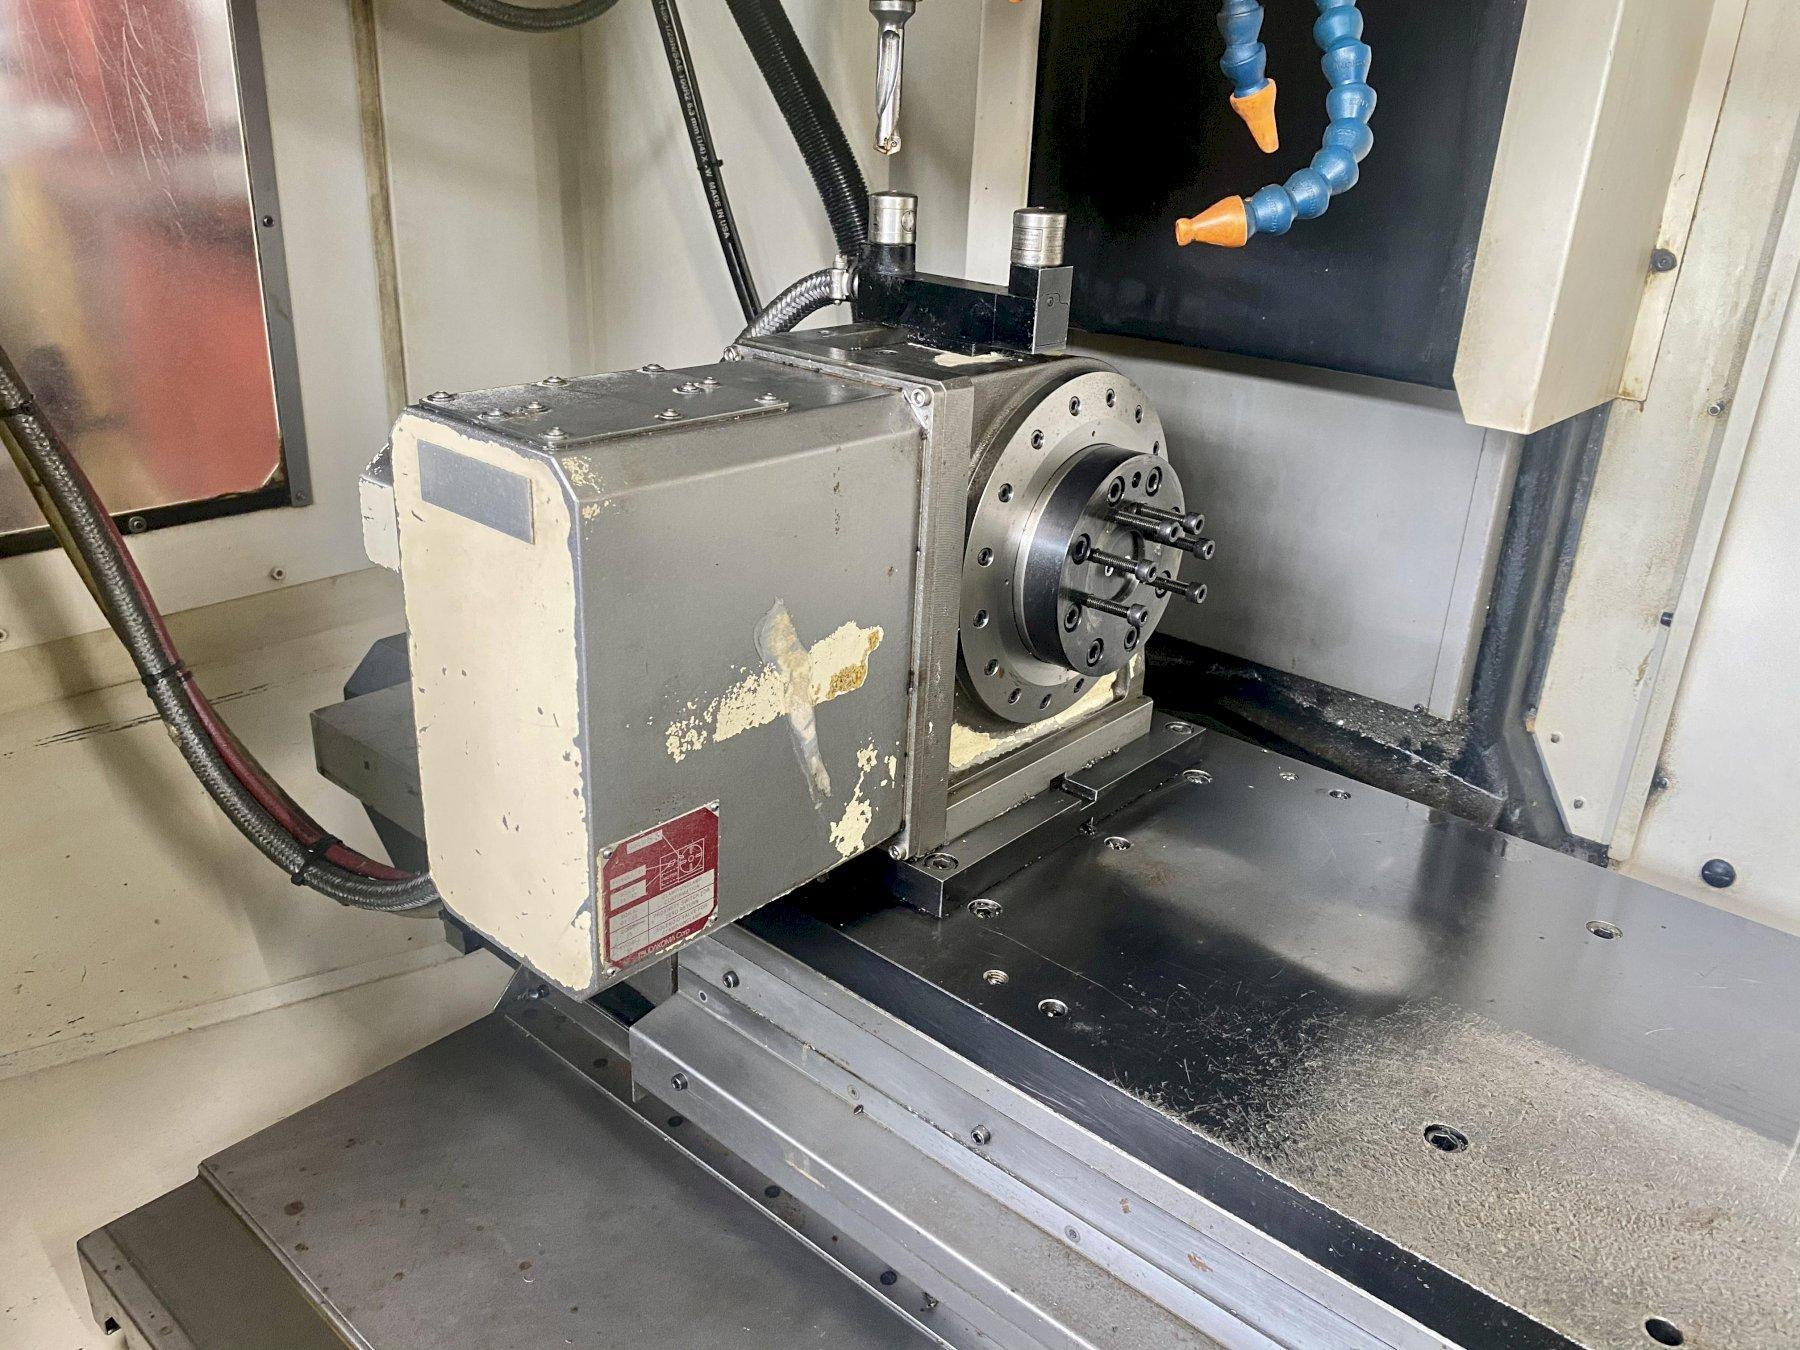 """FANUC ROBODRILL Alpha-T21iFLa 4-Axis CNC VERTICAL MACHINING CENTER, Fanuc 31i-A5 CNC Control, 33.46"""" x 16.1"""" Table, X=27.55"""", Y=15.74"""", Z=12.99"""", 10,000 Max Spindle RPM, BT-30 Taper, 21 ATC, TSC, Chip Conveyor, New 2010."""